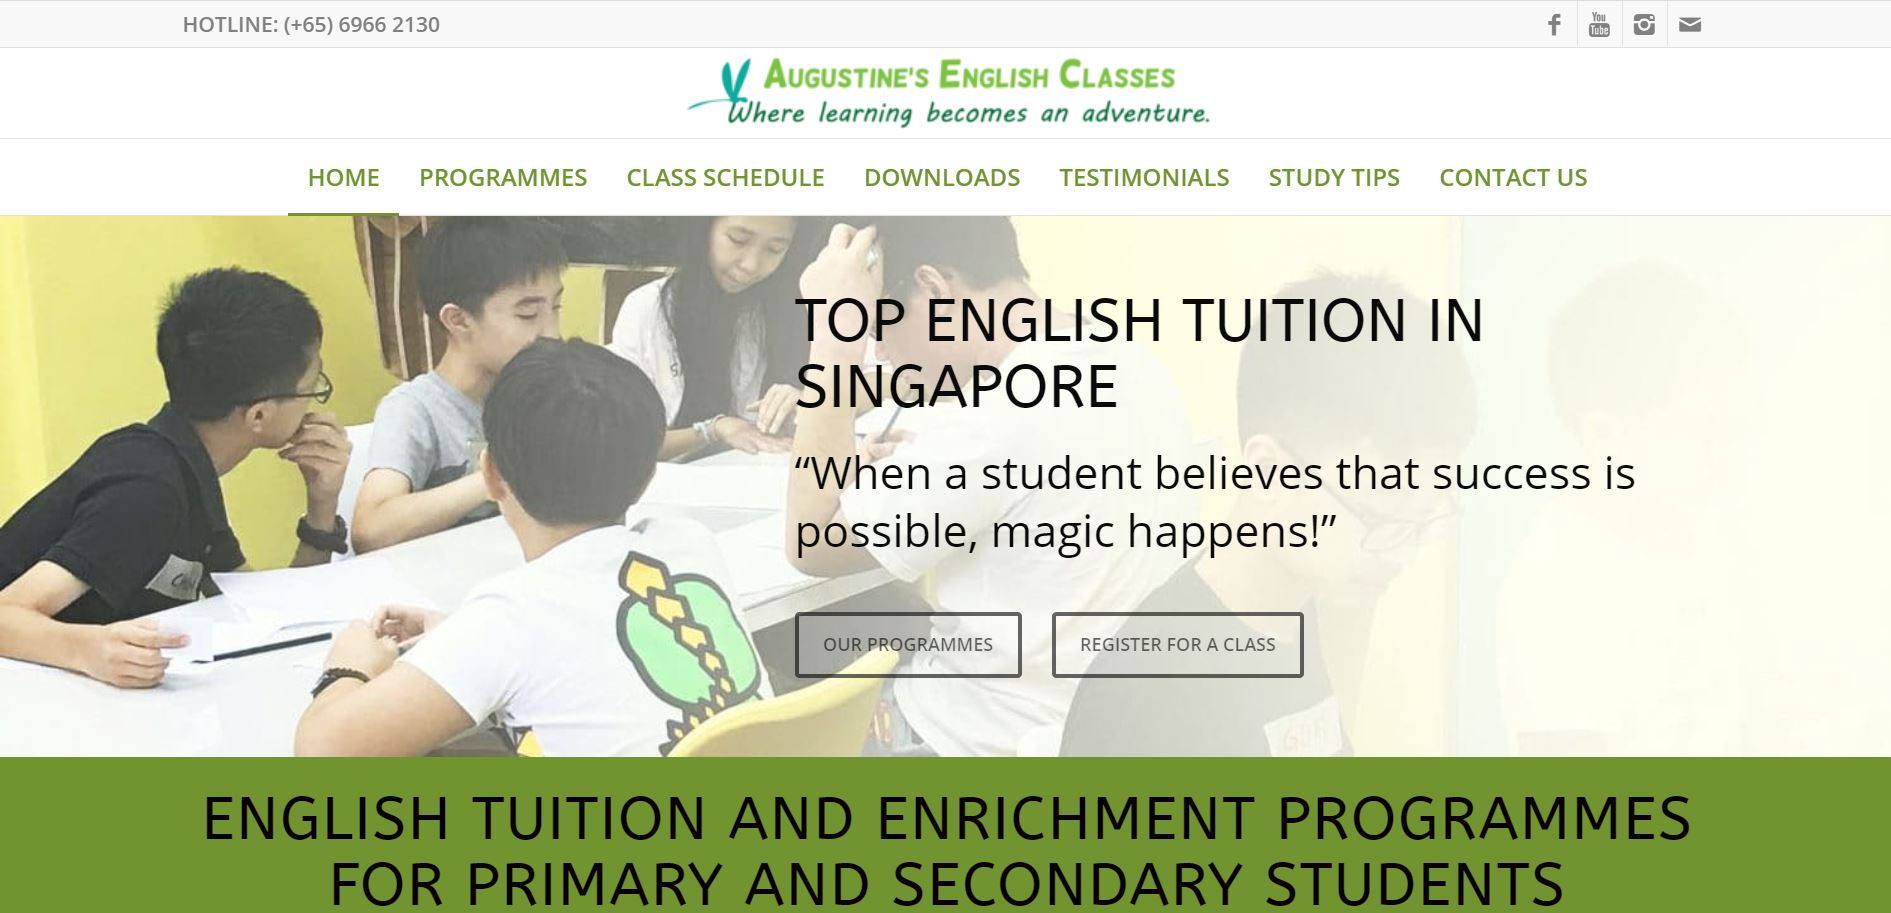 Augustine's English Classes Secondary School Tuition